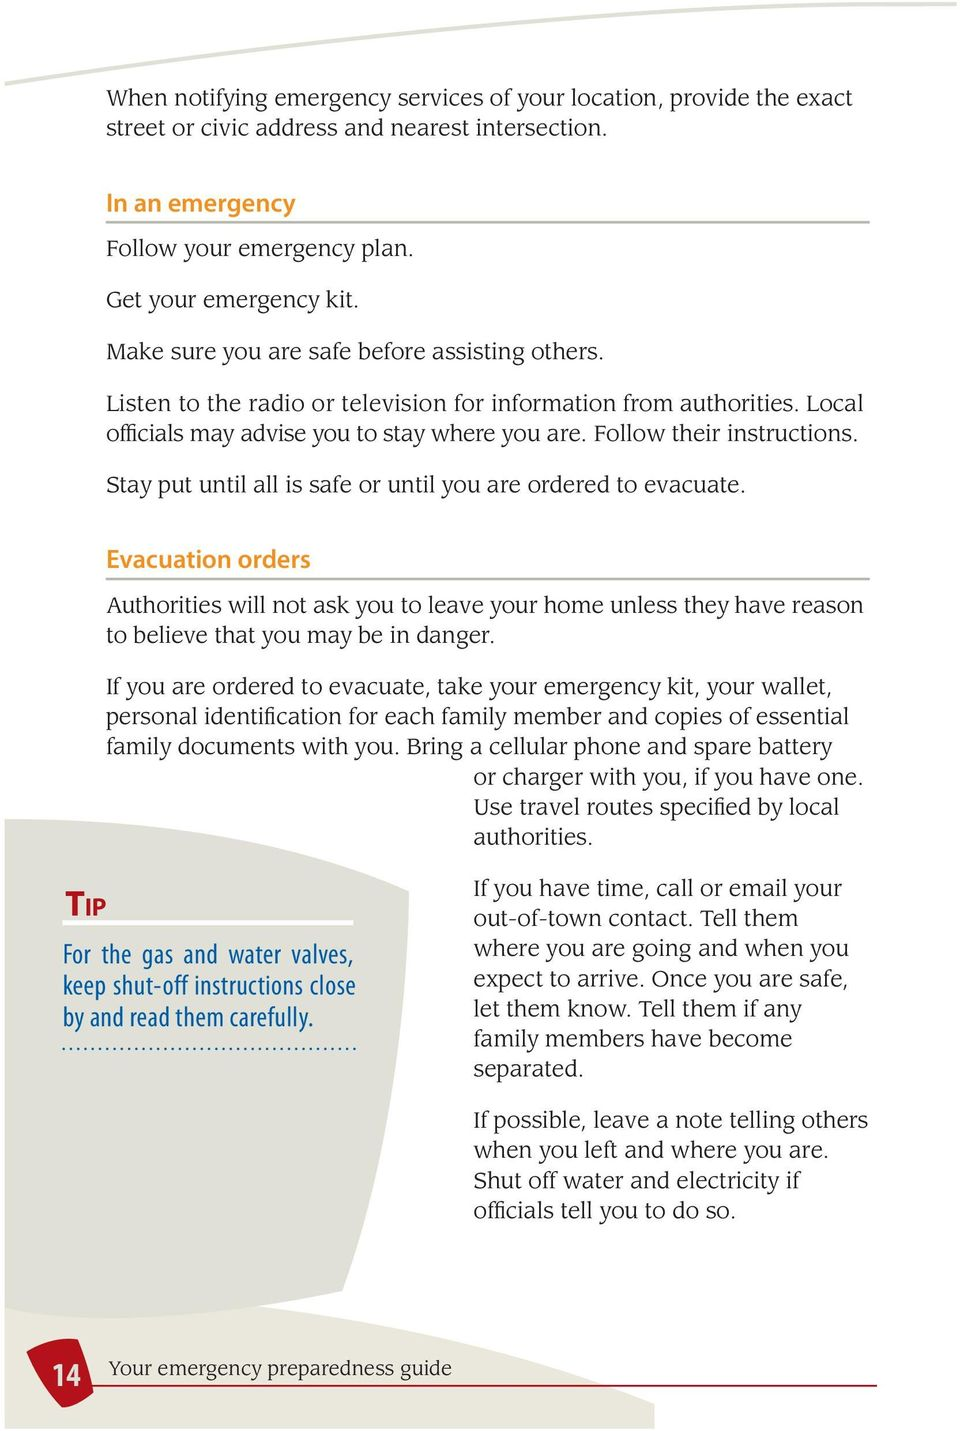 Stay put until all is safe or until you are ordered to evacuate. Evacuation orders Authorities will not ask you to leave your home unless they have reason to believe that you may be in danger.